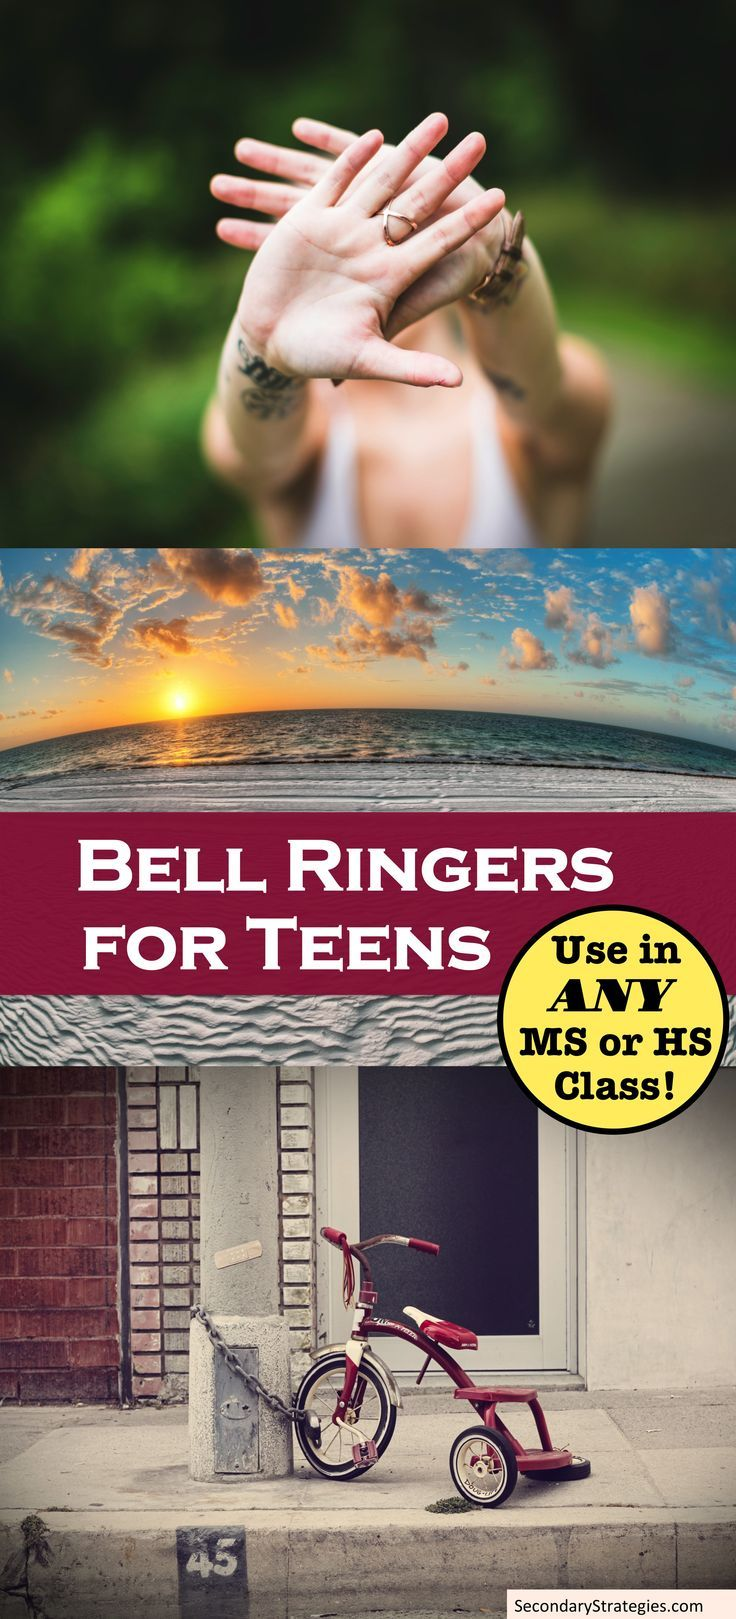 Bell Ringers are a great way to begin class and to build community in your classroom. Designed with stunning photographs and prompts teens will respond to, these 26 Bell Ringers are ideal for ALL Middle and High school classrooms.